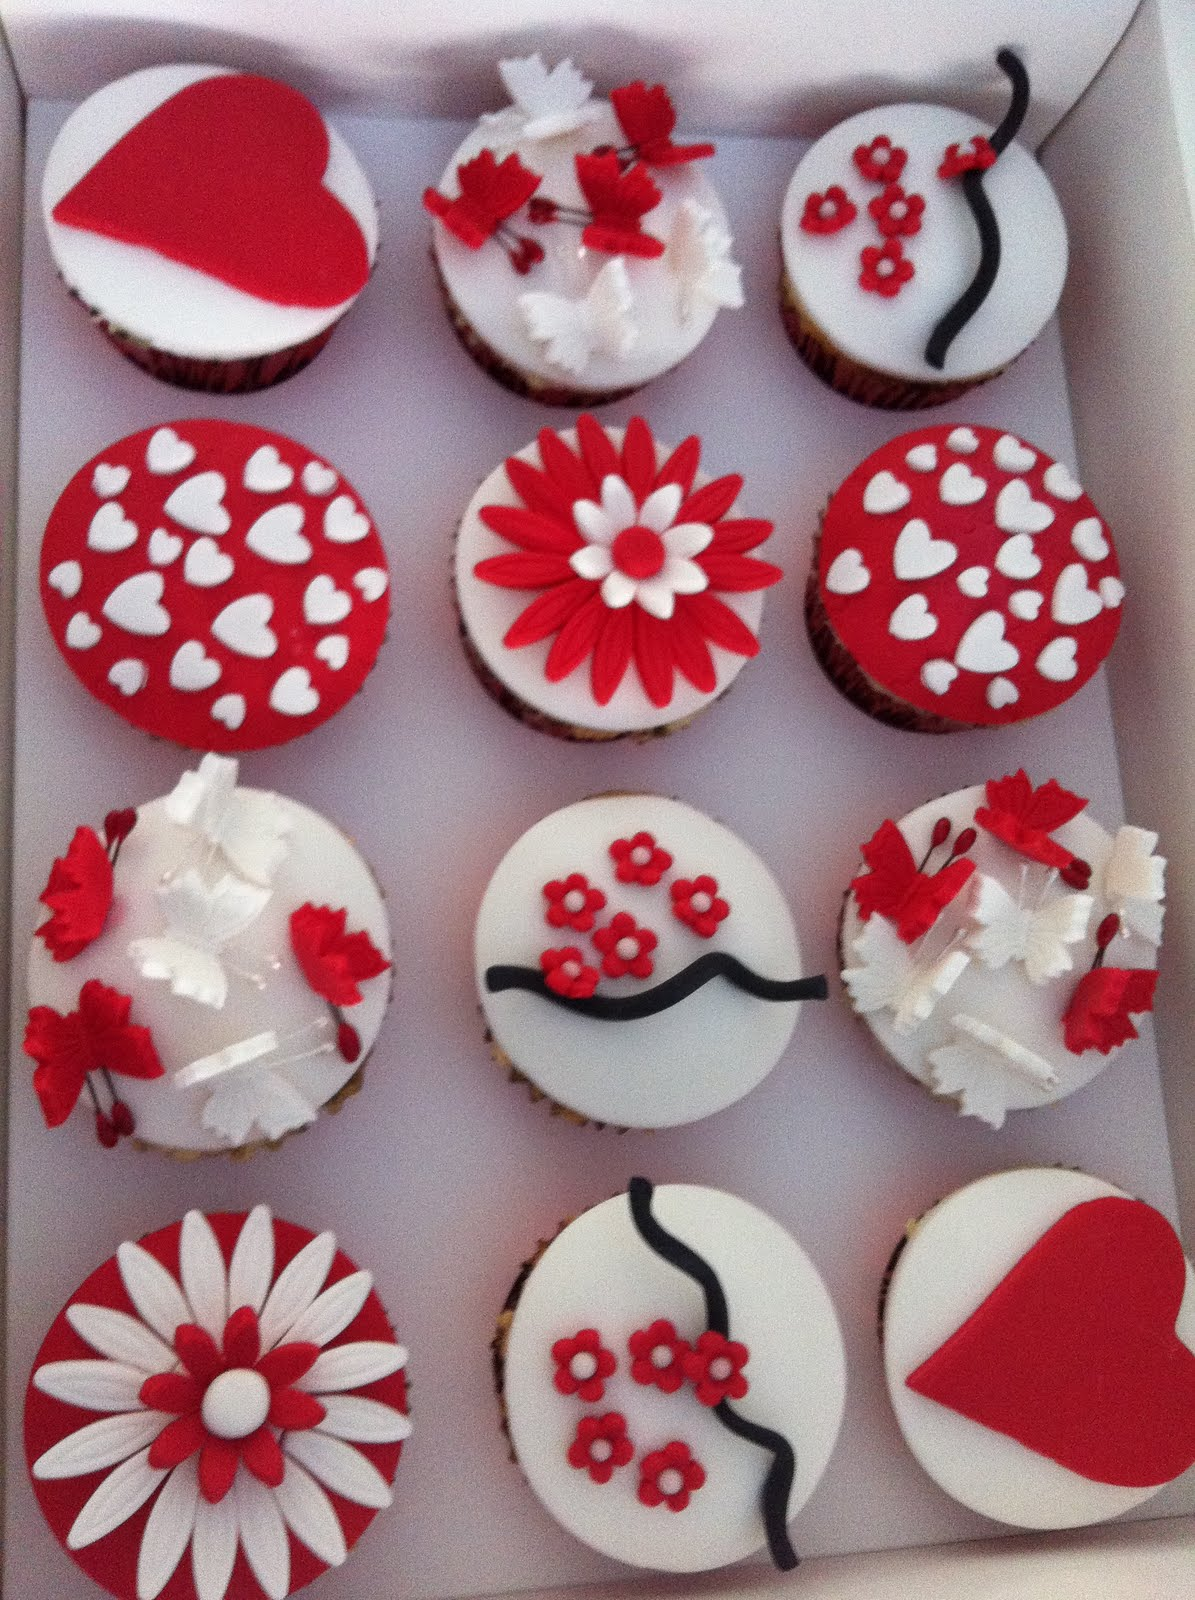 The Cupcake Stand Red and White Wedding Cupcakes